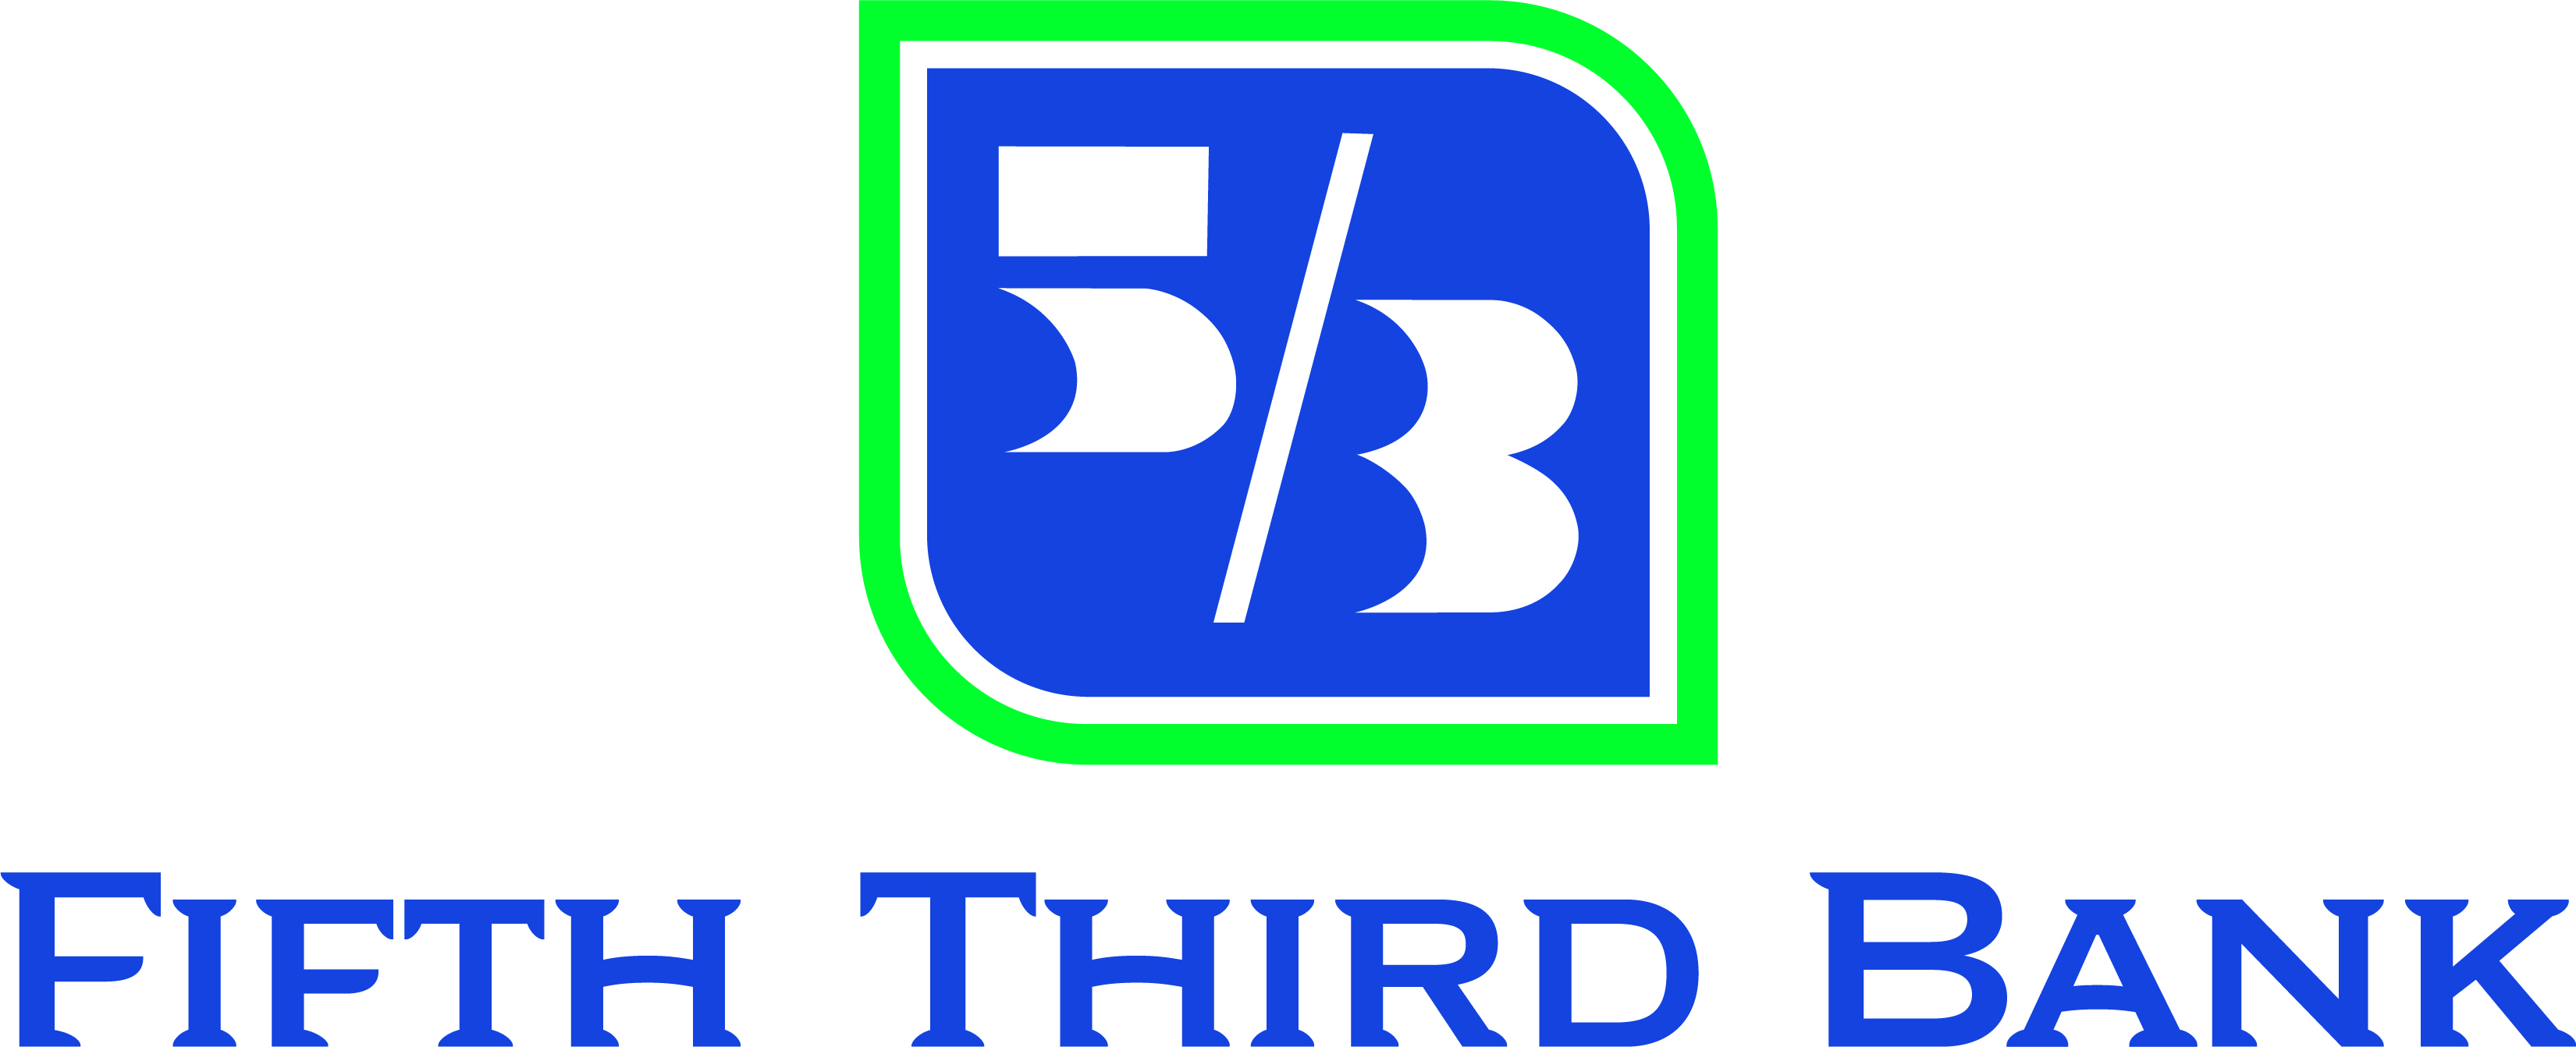 https://www.smallbusinessadvocacycouncil.org/2020/01/26/fifth-third-bank/